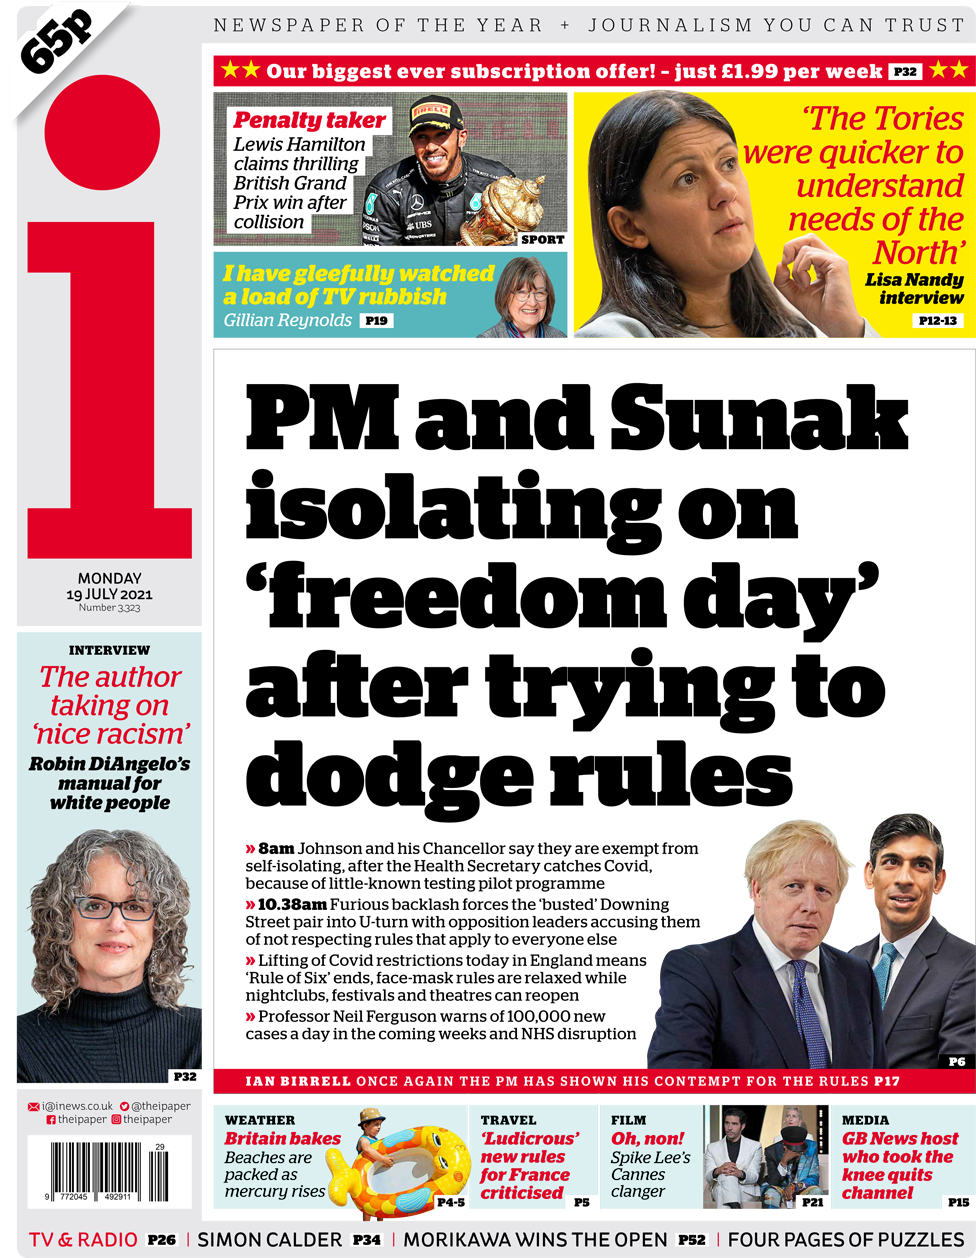 The i front page 19 July 2021